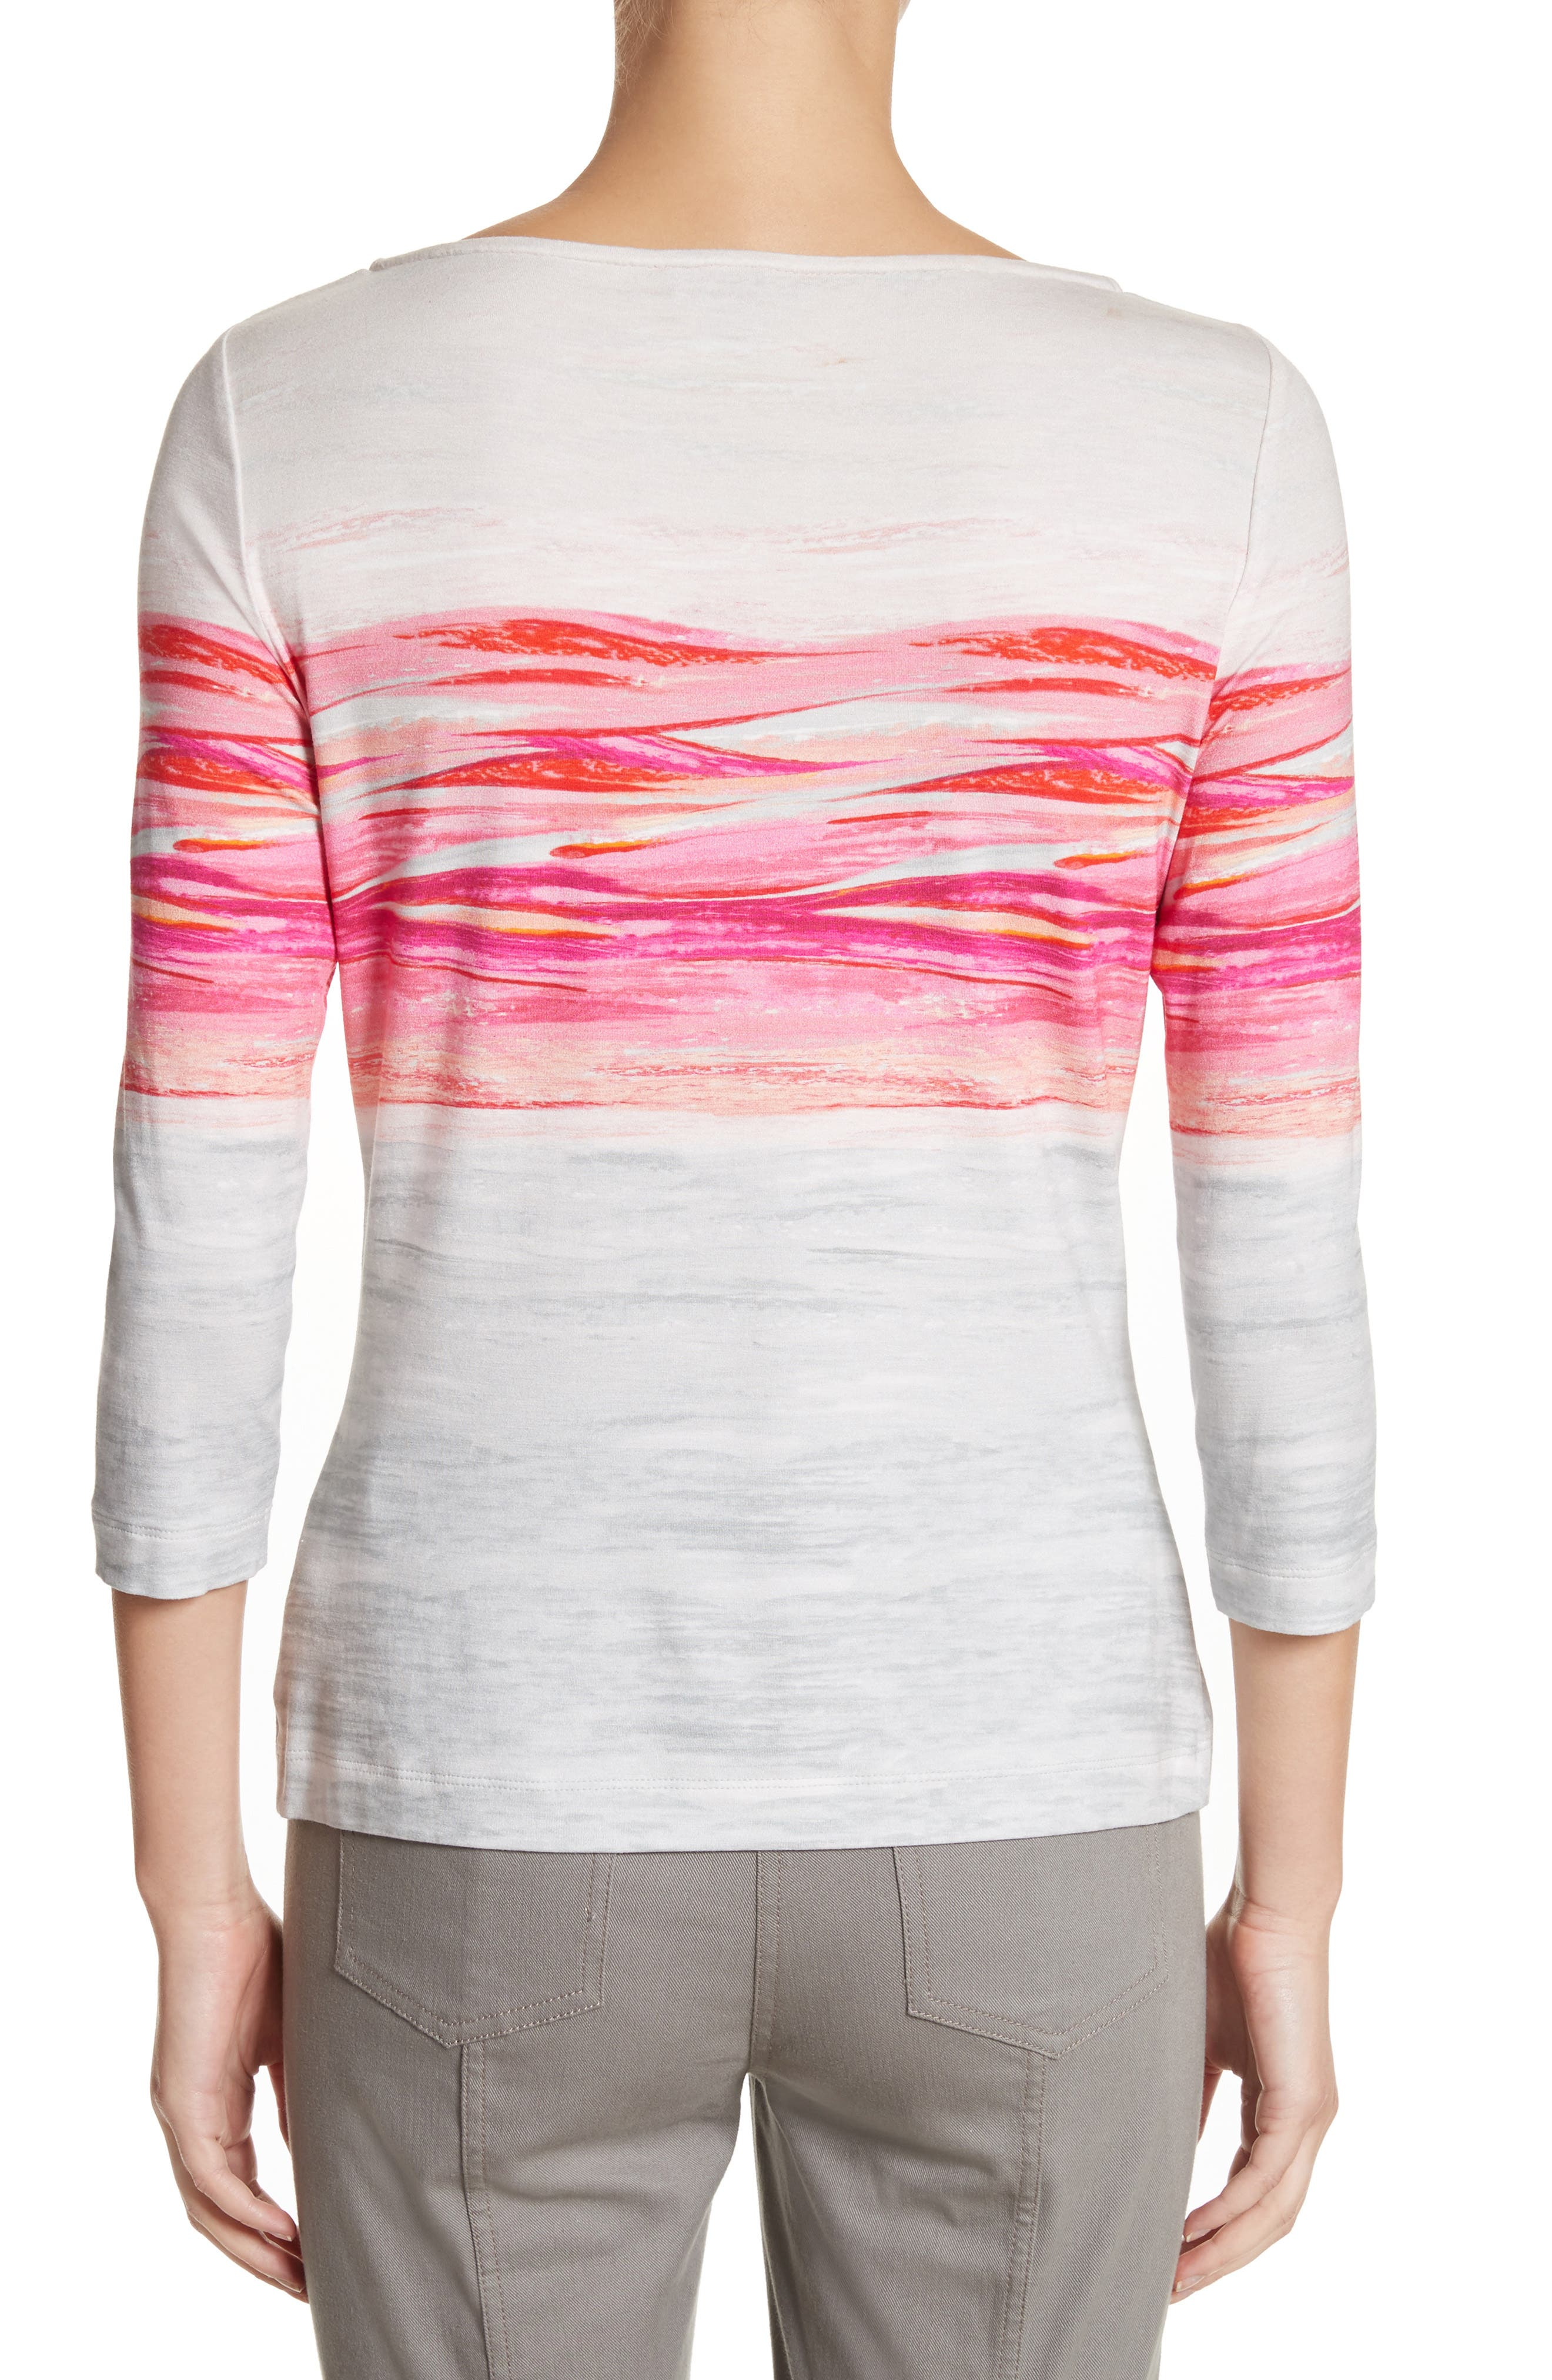 Textured Brushstroke Print Jersey Top,                             Alternate thumbnail 2, color,                             Bright Coral Multi